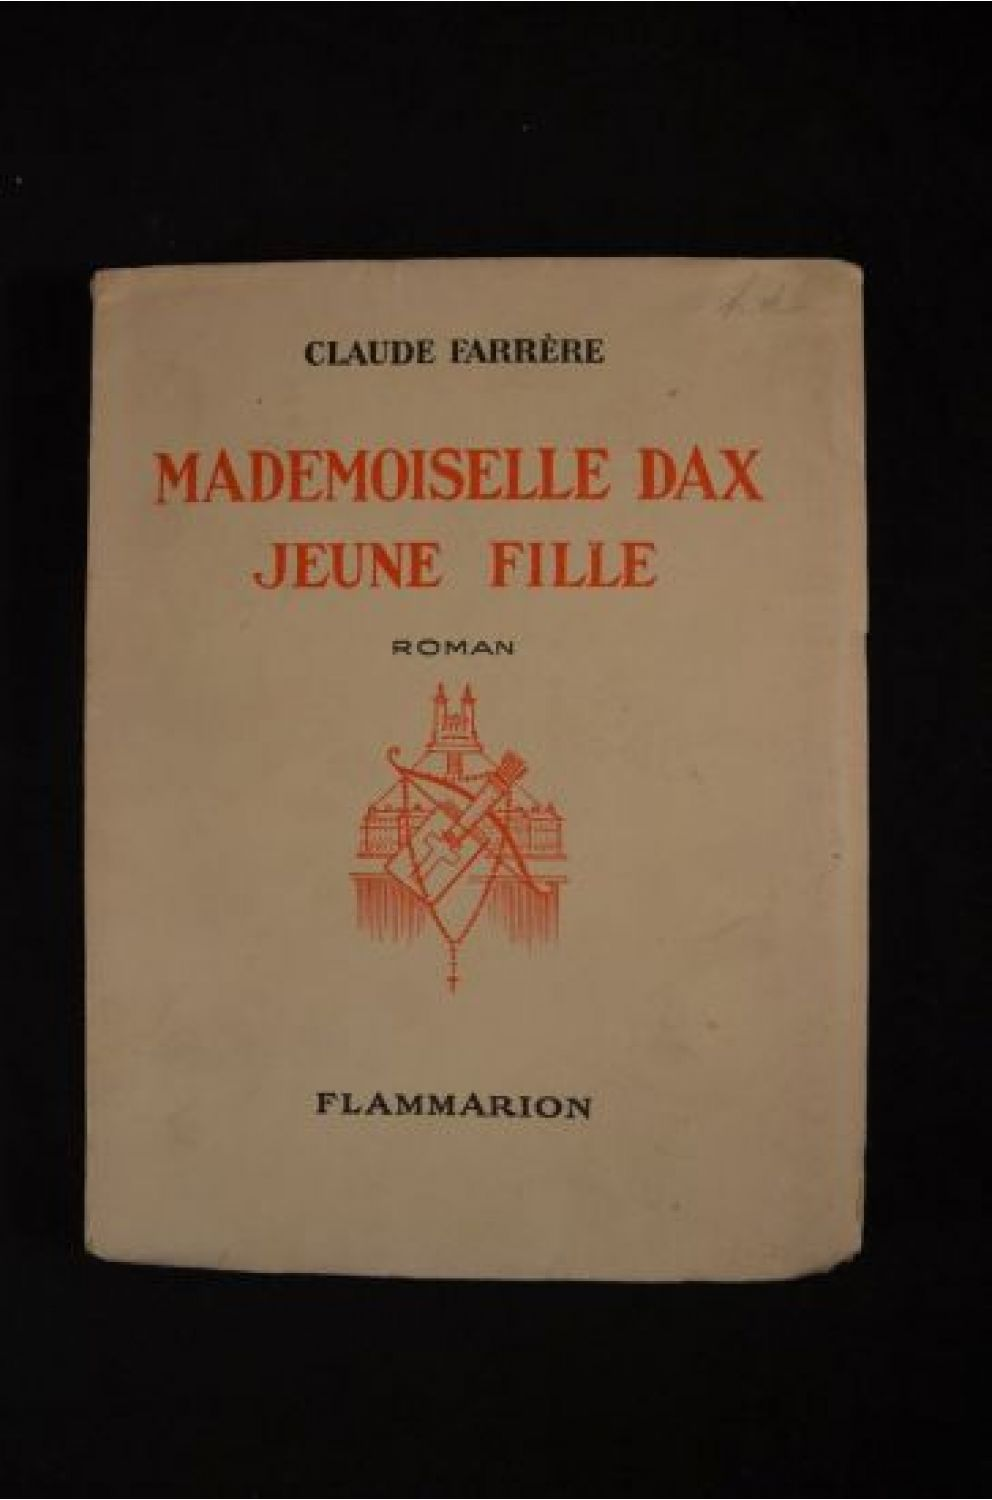 FARRERE : Mademoiselle Dax jeune fille - Signed book